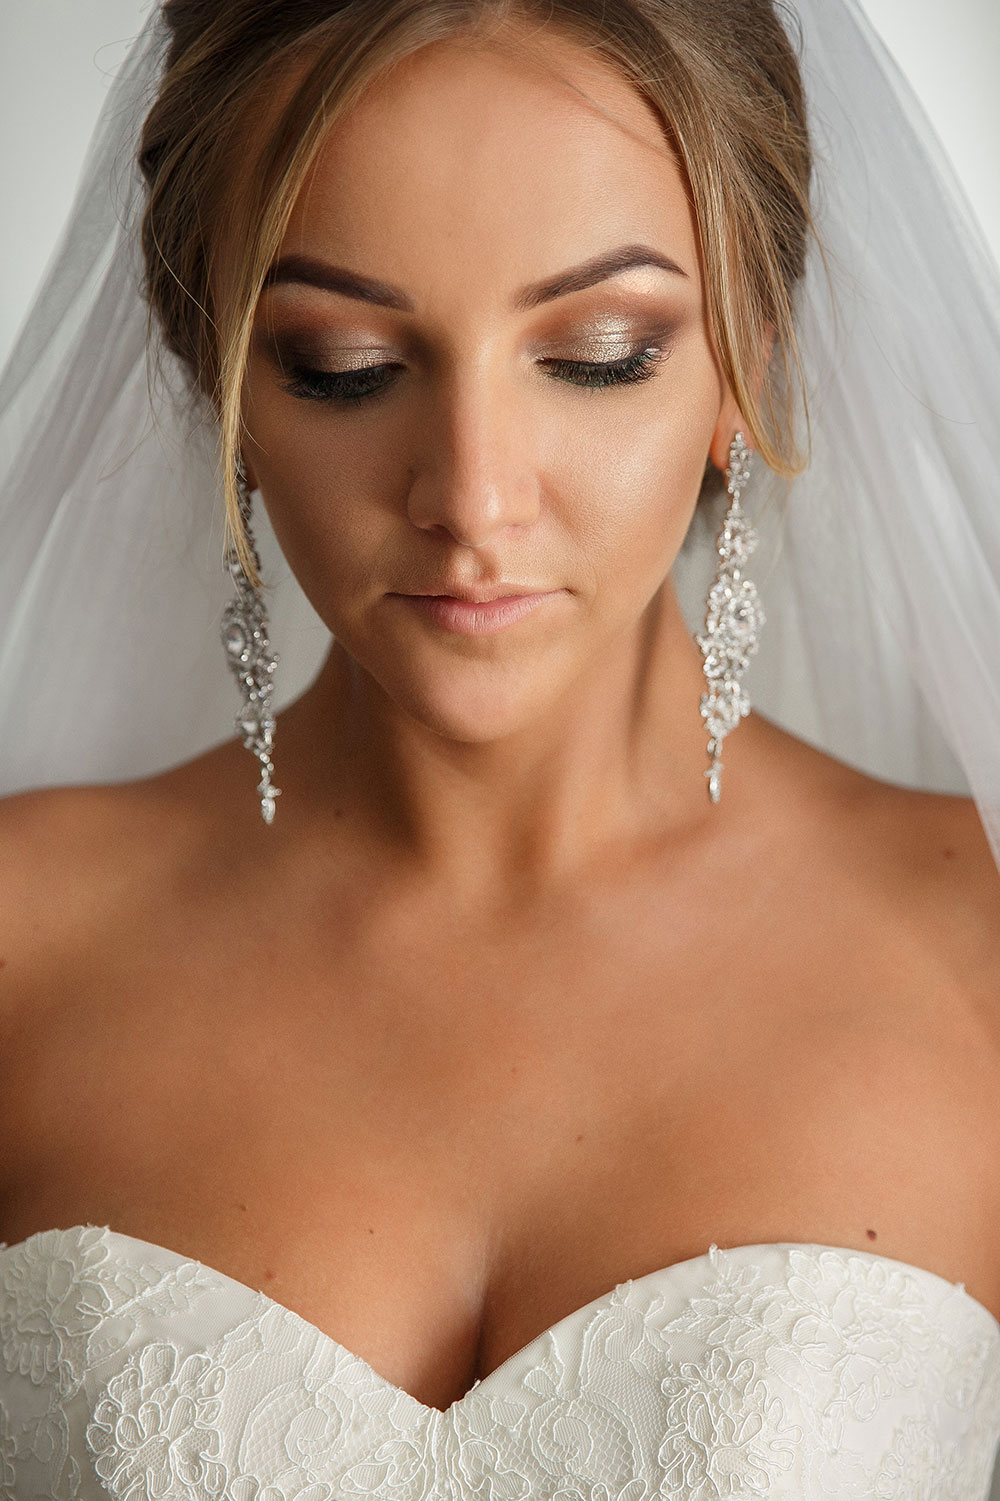 The Bronze Beauty natural wedding makeup